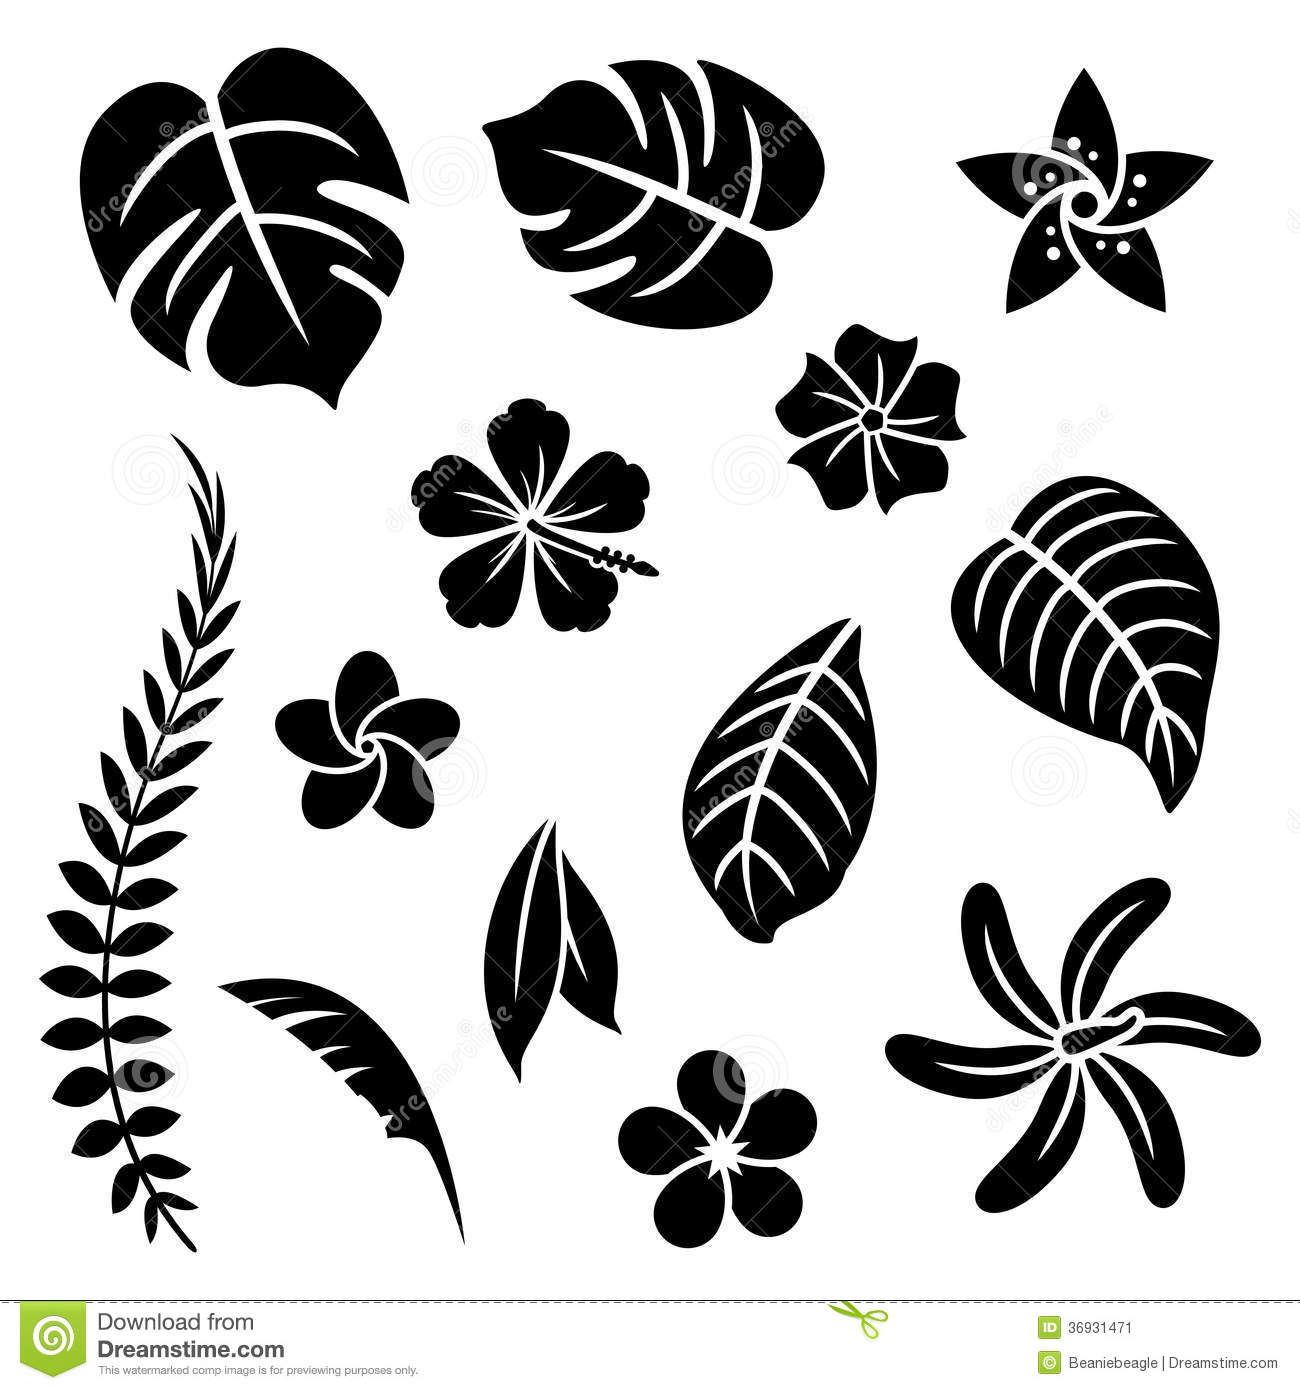 Black Flower And Bud Pattern Royalty Free Stock Photos: Black Silhouette Of Rose. Vector Illustration. Royalty